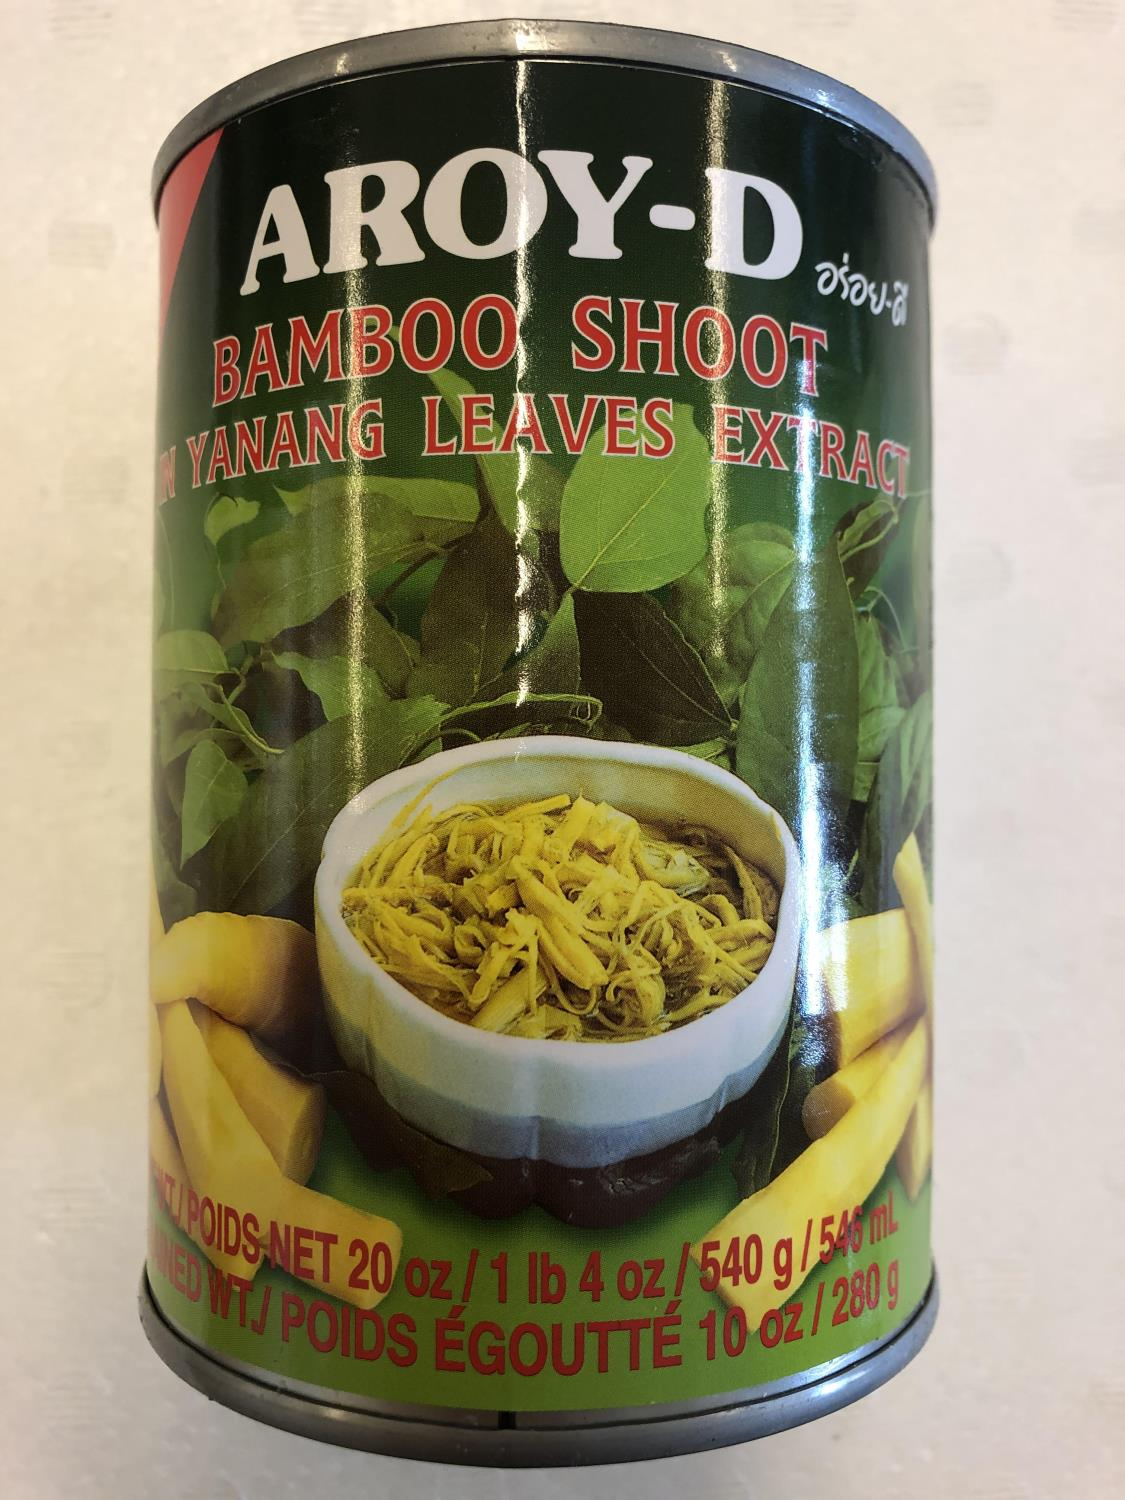 'AROY-D Bamboo Shoot in Yanang Leaves Extract 540gr